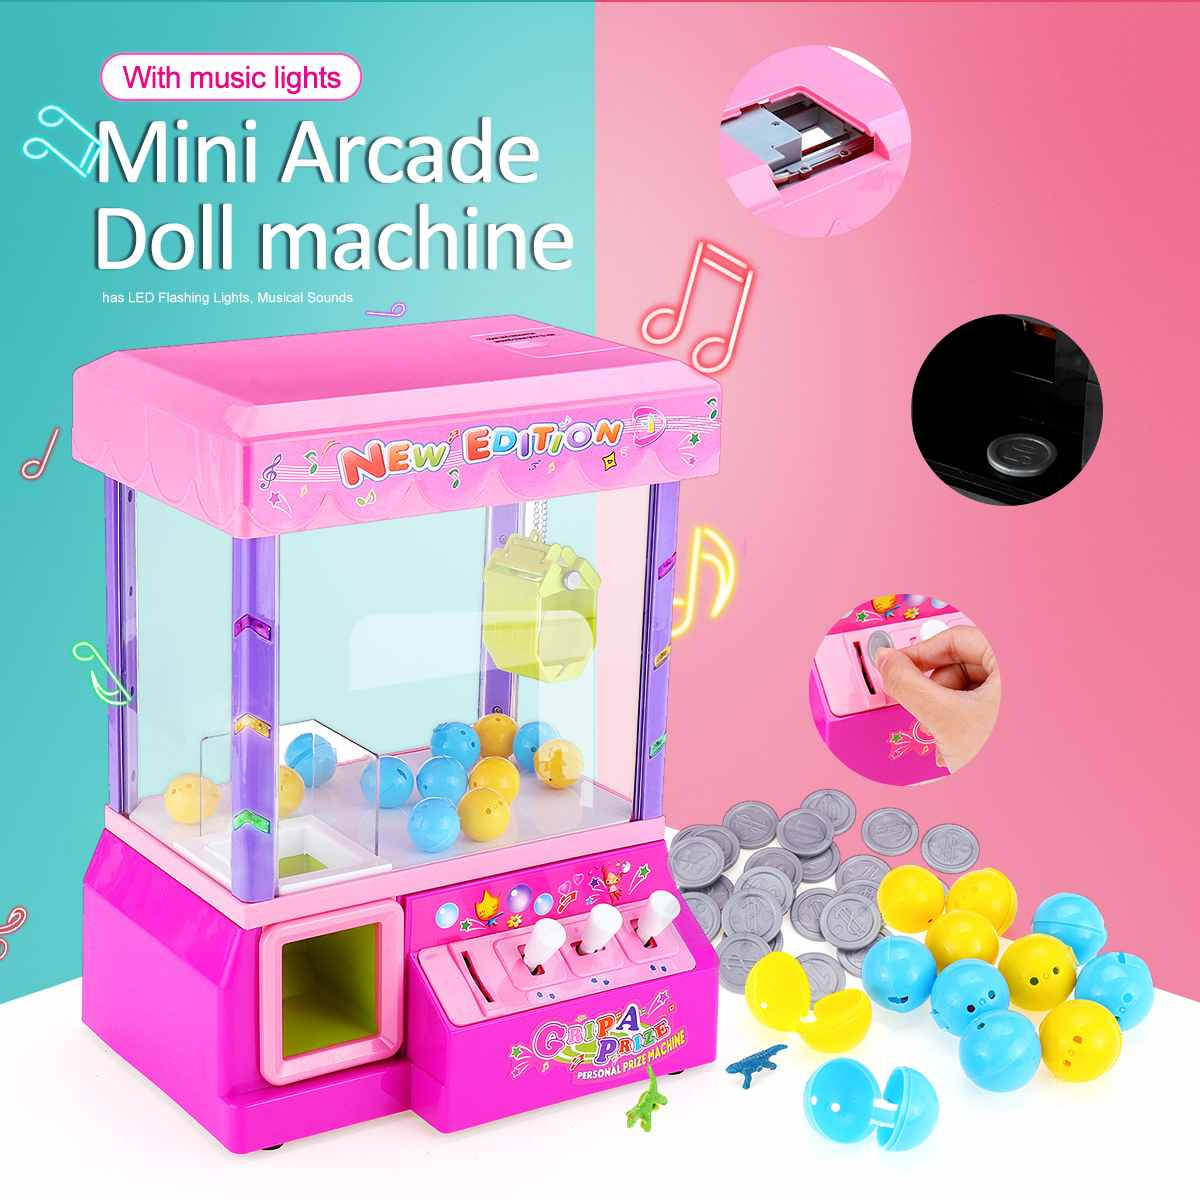 Hot Sale Kids Music Electronic Claw Game Crane Candy Doll Machine Grabber Kids Toy Home Arcade GiftHot Sale Kids Music Electronic Claw Game Crane Candy Doll Machine Grabber Kids Toy Home Arcade Gift